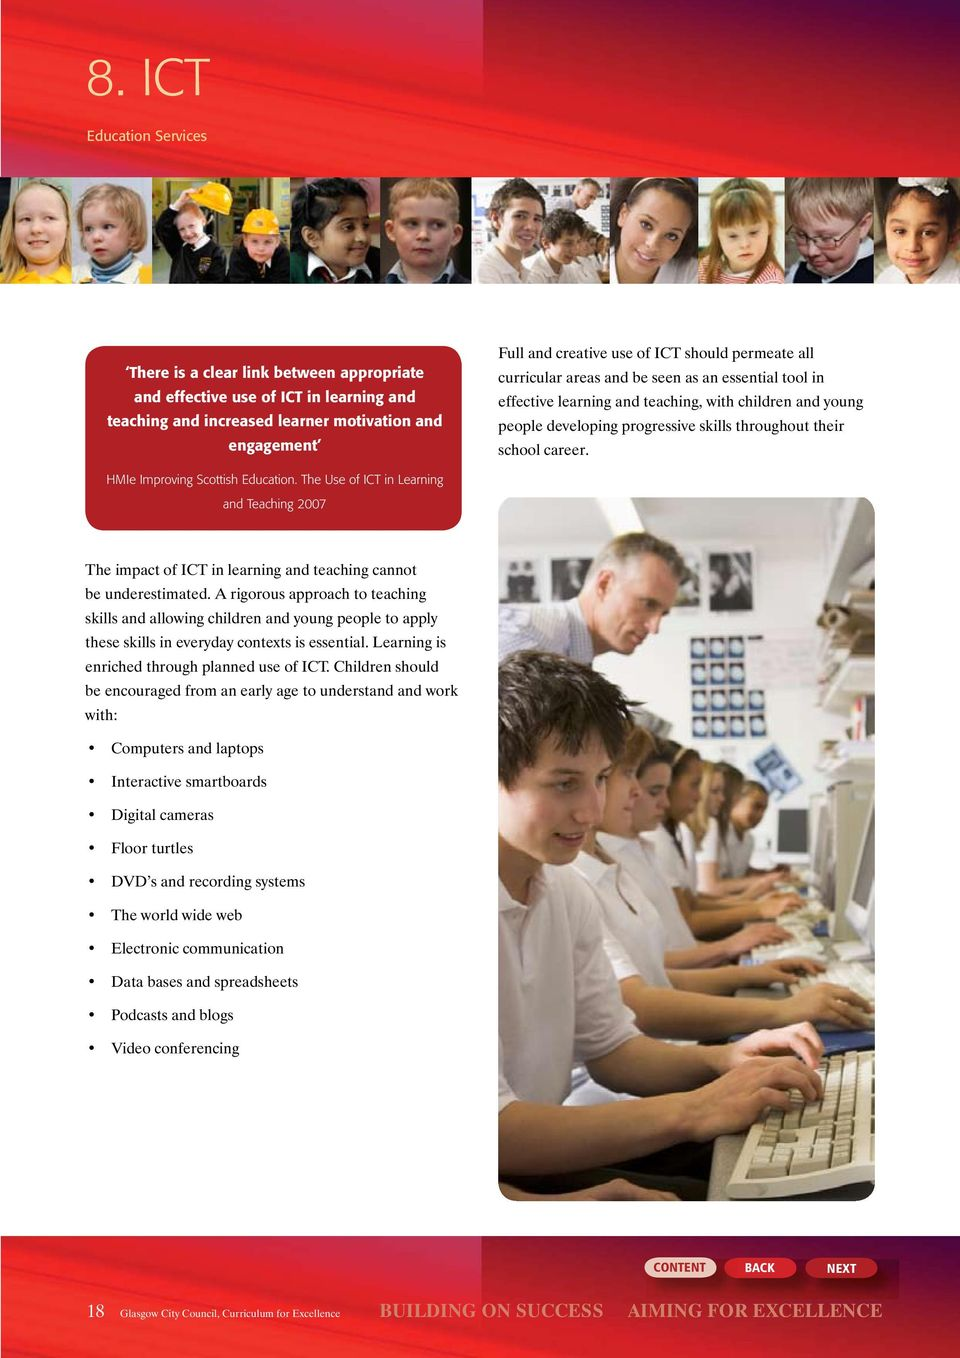 The Use of ICT in Learning and Teaching 2007 The impact of ICT in earning and teaching cannot be underestimated.